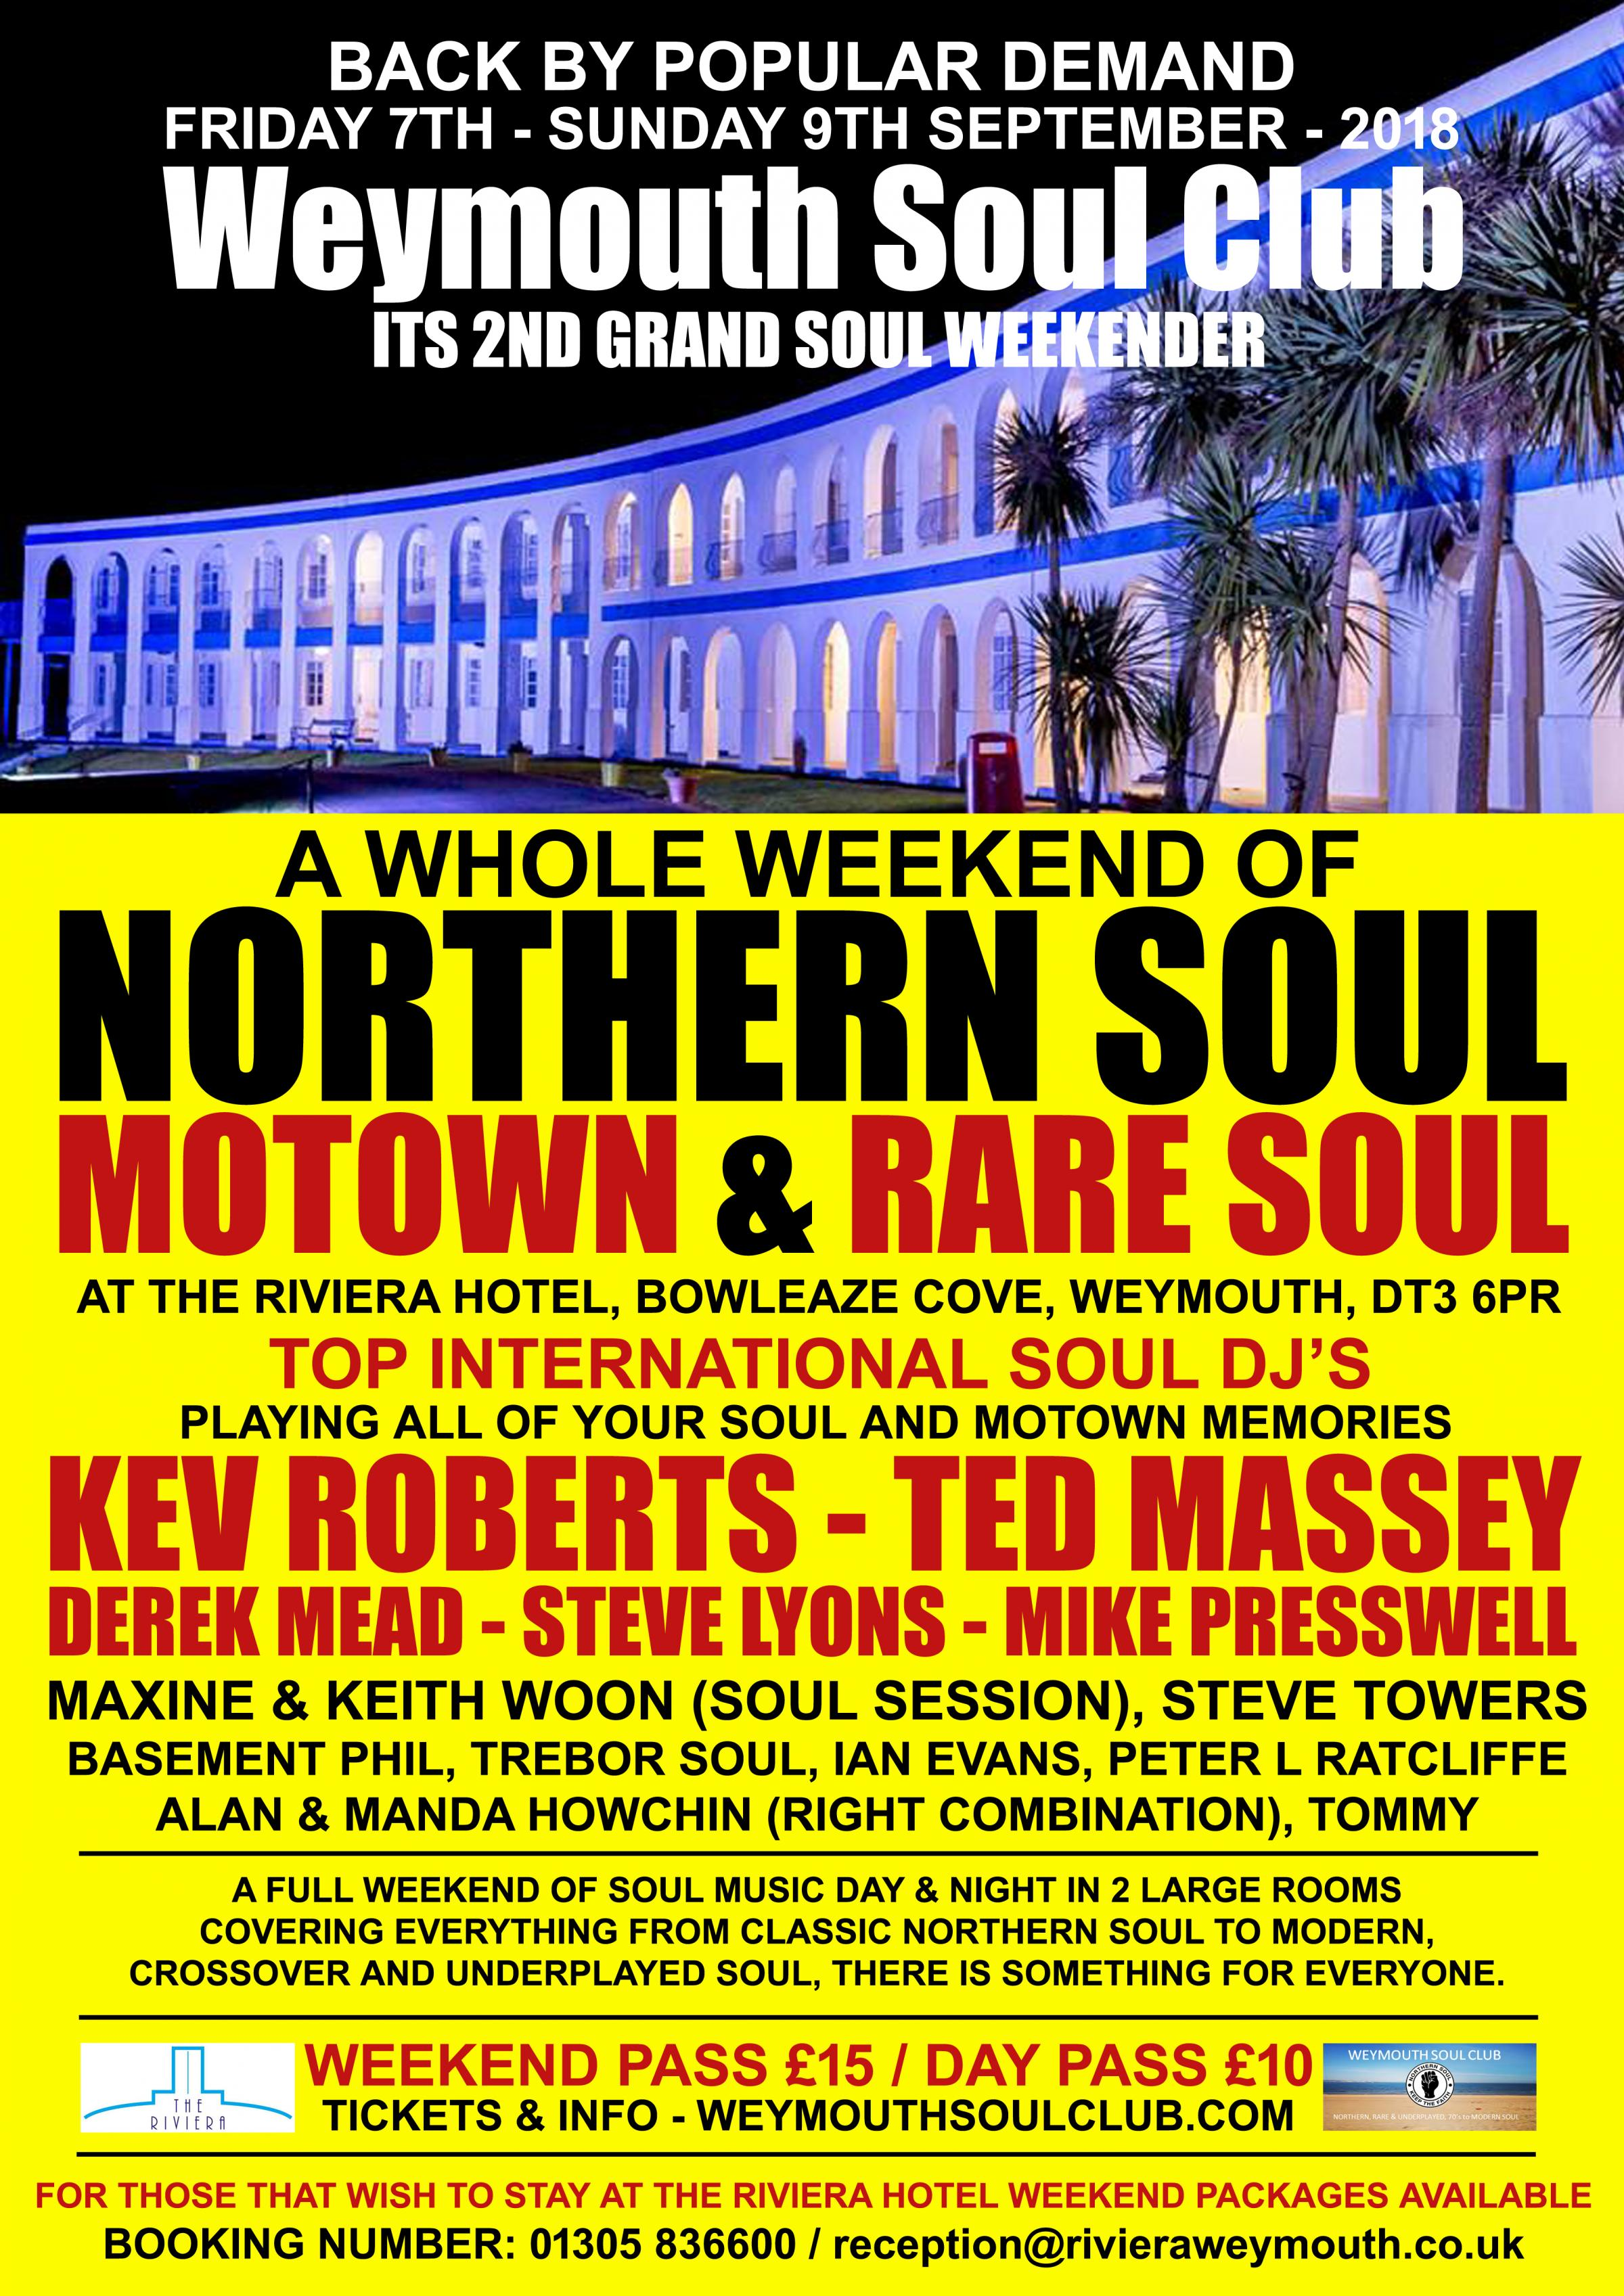 Weymouth Soul Club